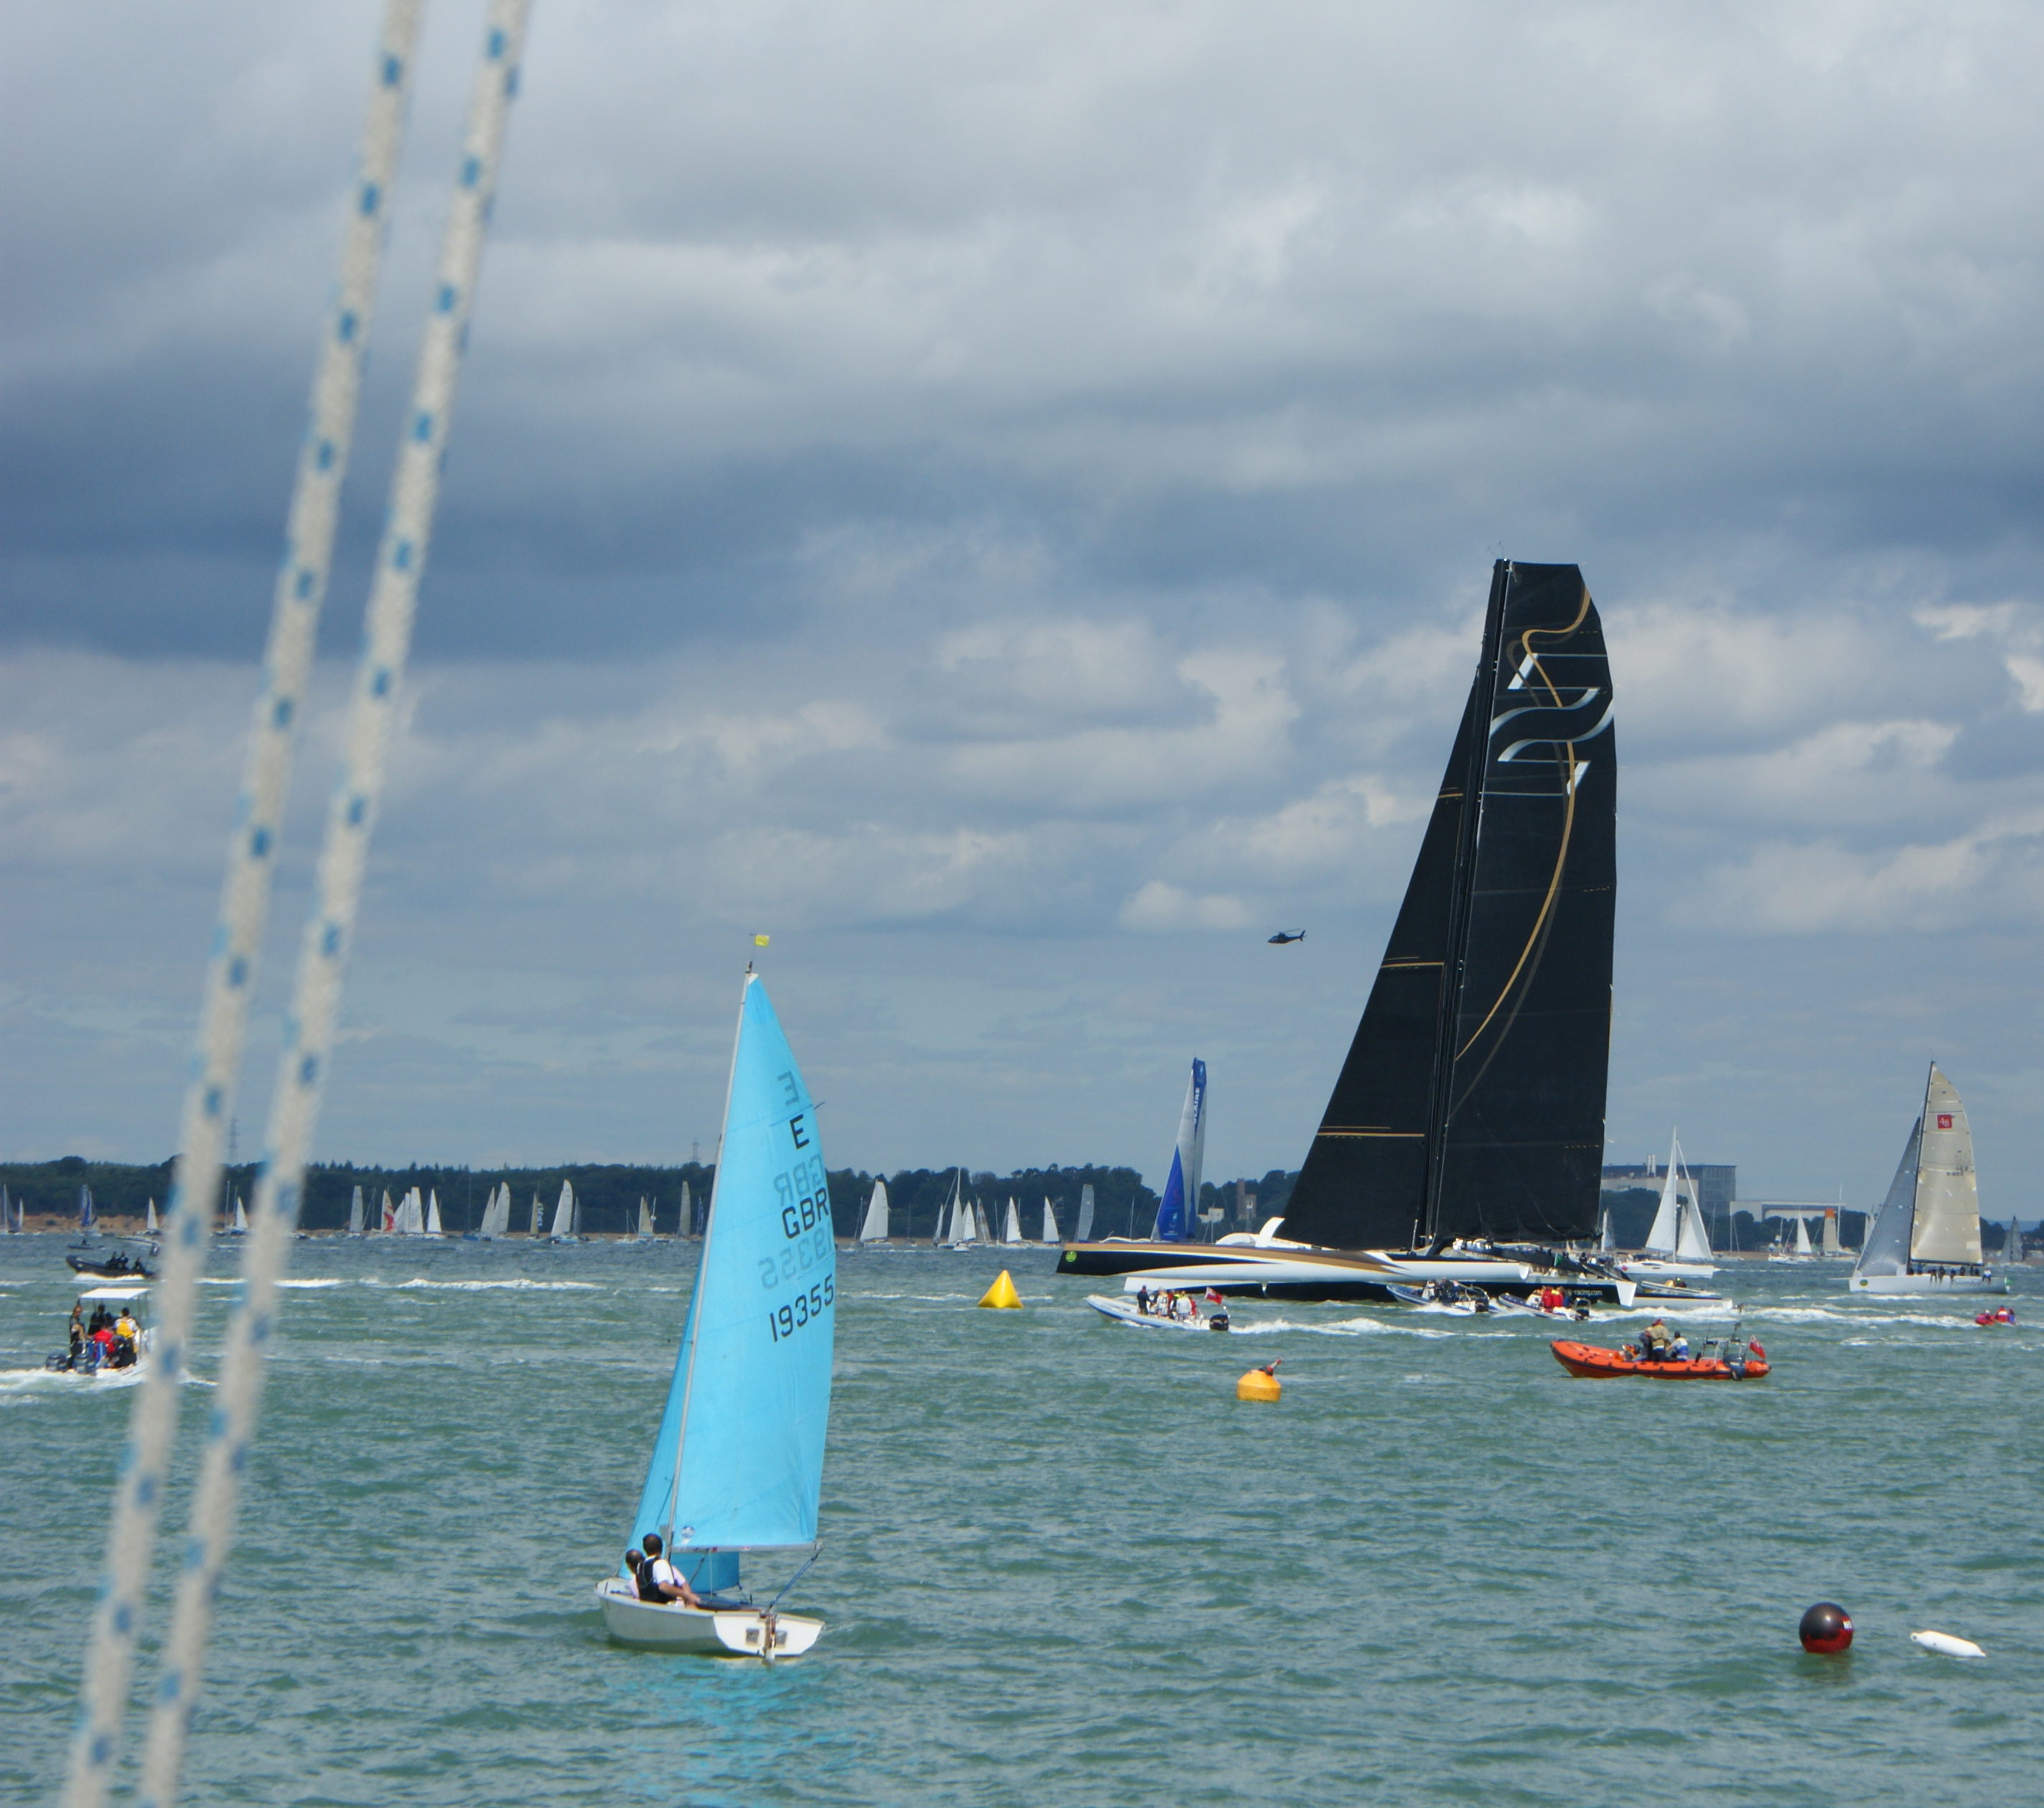 Spindrift 2 starts the Fastnet